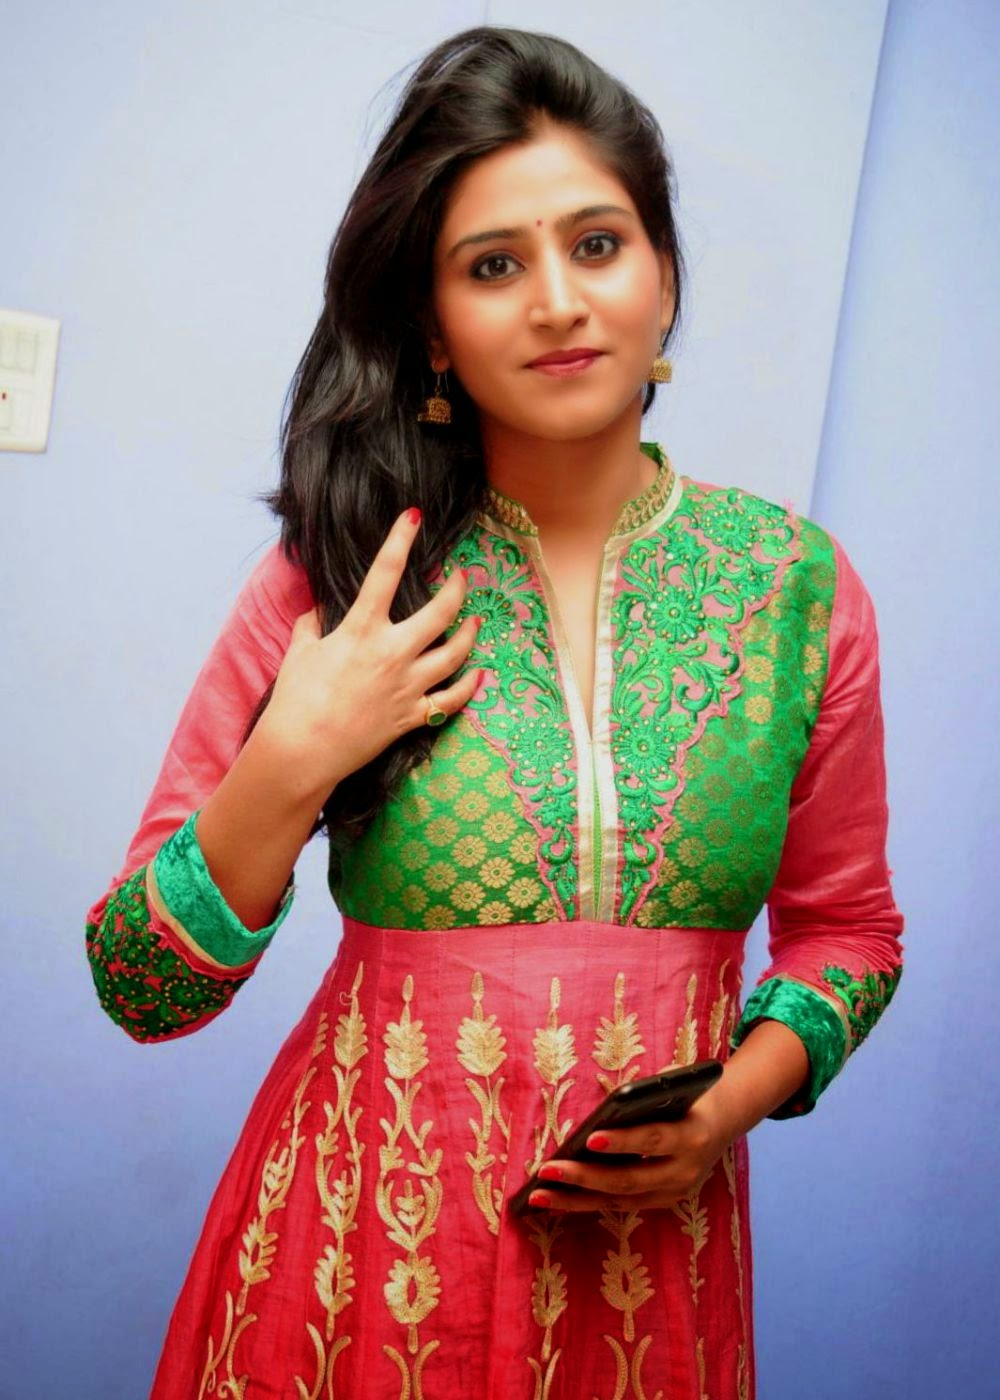 Glamorous Shamili Hot Photos In Red Dress